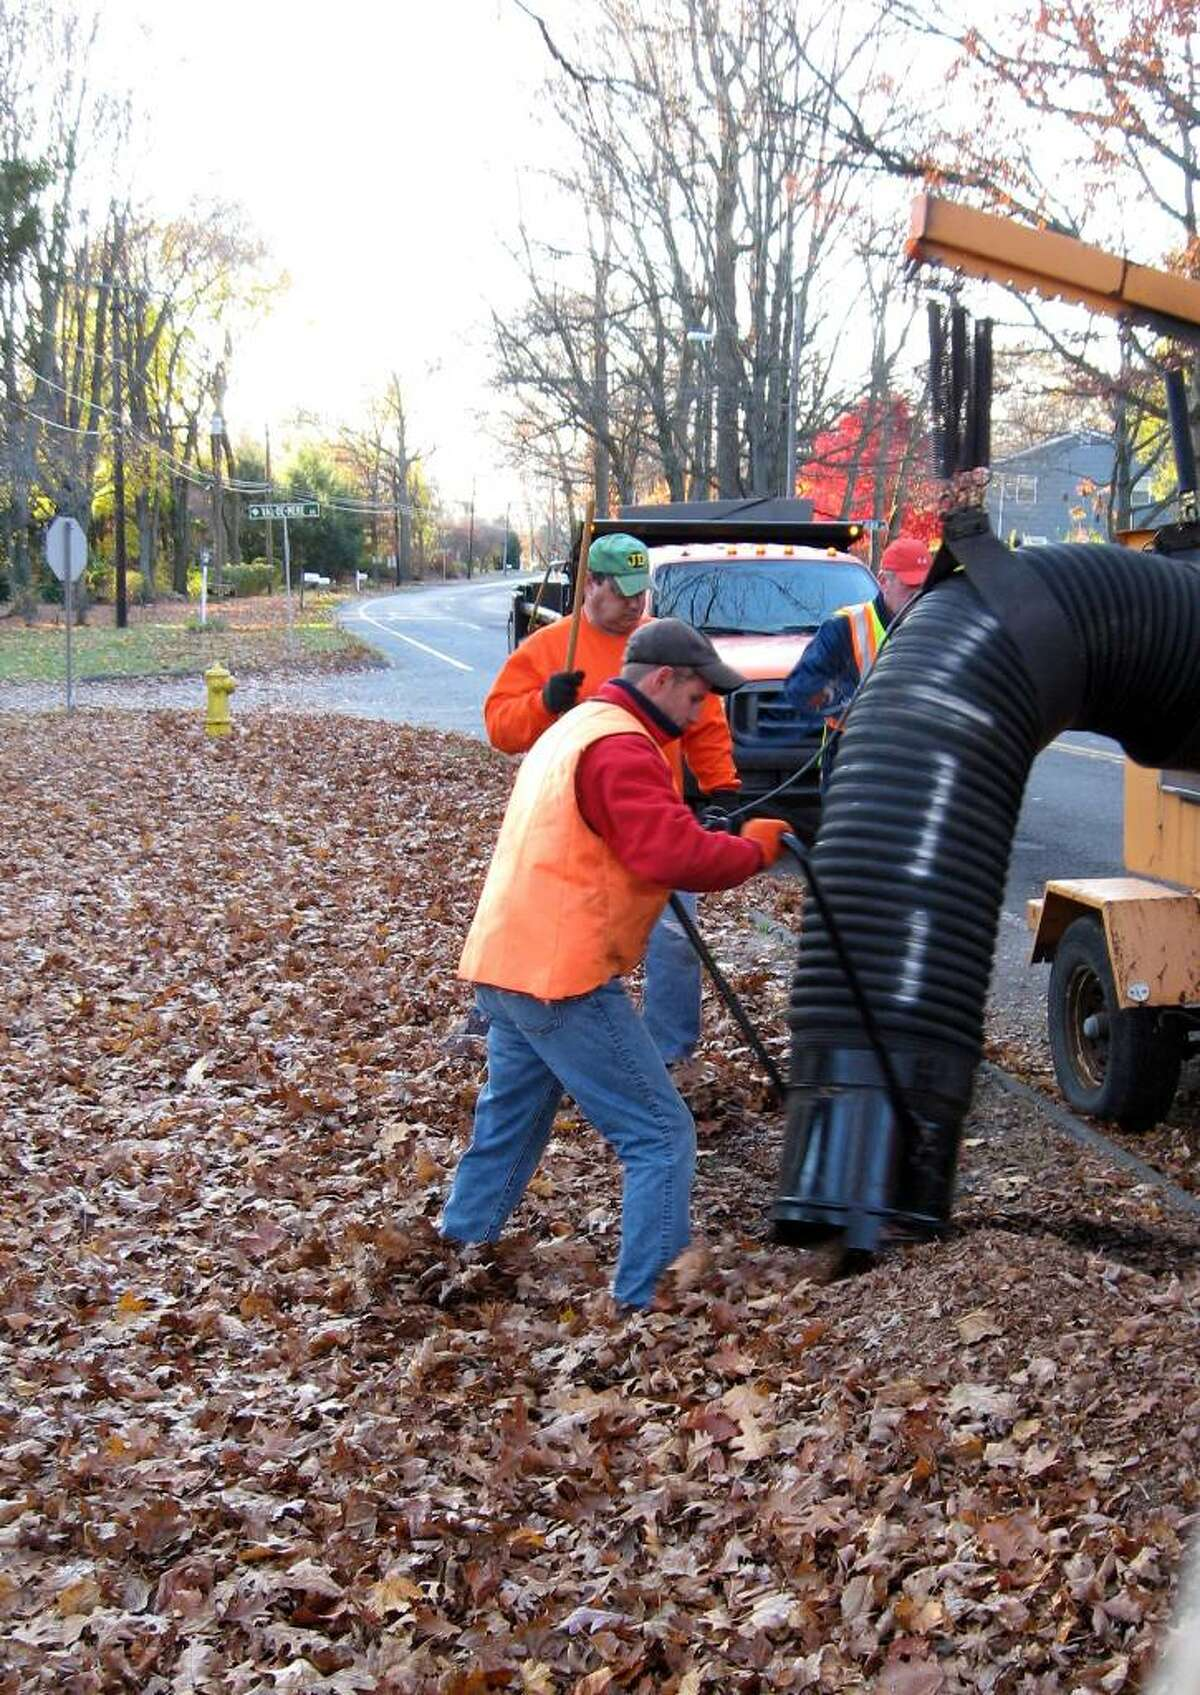 Rich Infante, left, and Jim McGuire of the Trumbull DPW operate a leaf vacuum, which is used on busier streets that can't be closed off. Elsewhere, Payloaders and dump trucks do the leaf-pickup job, but there's still a lot of raking involved.